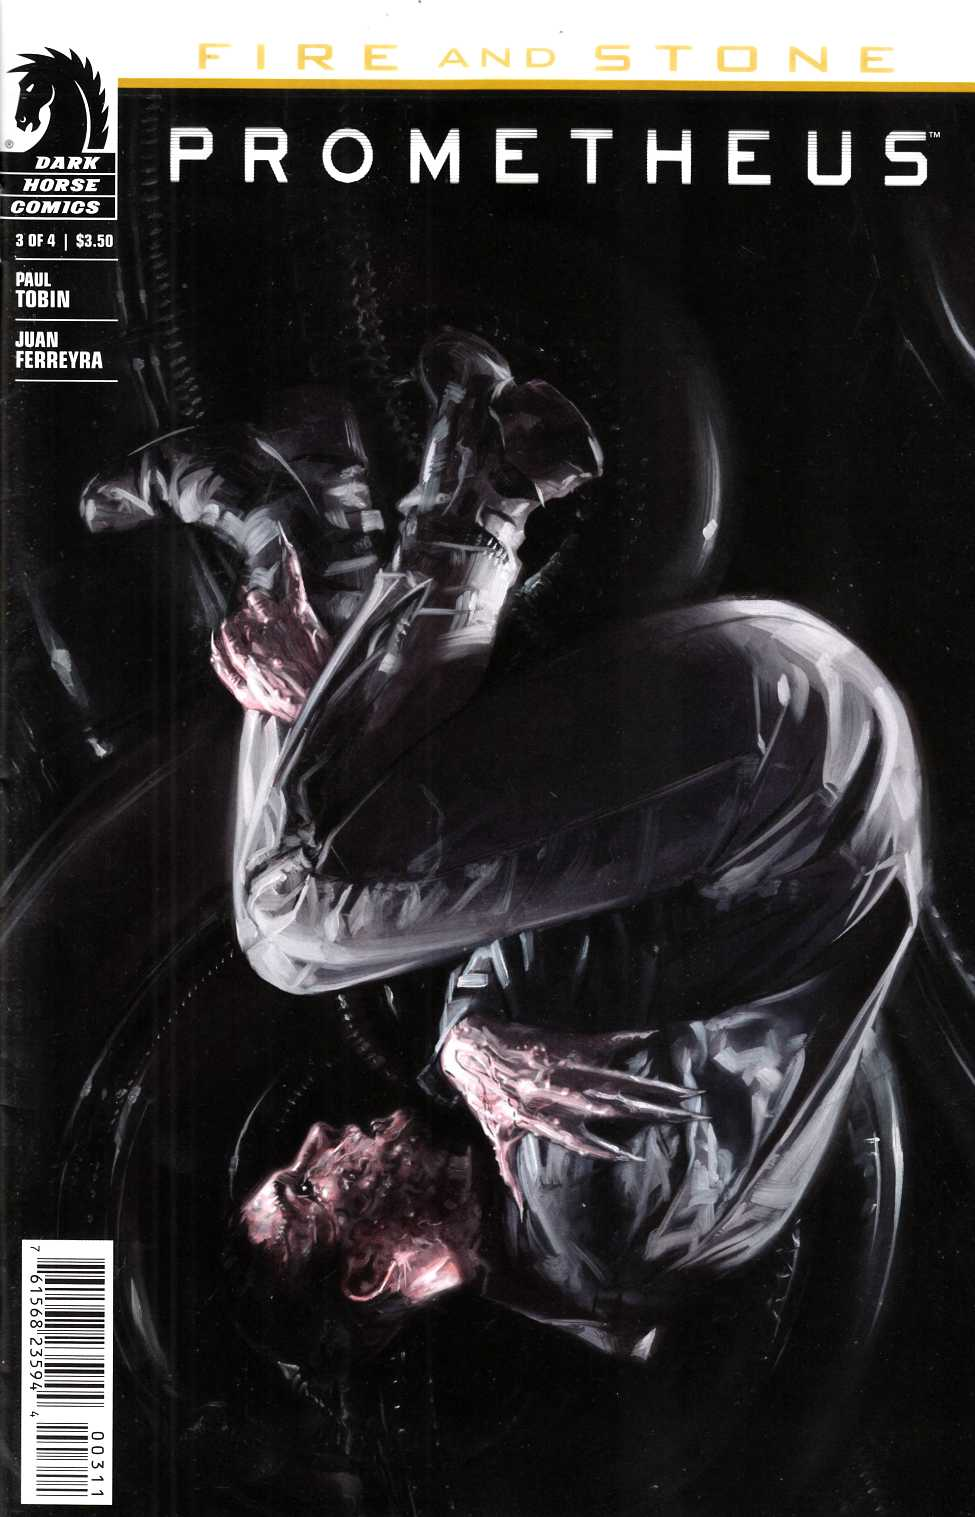 Prometheus Fire and Stone #3 [Dark Horse Comic] THUMBNAIL